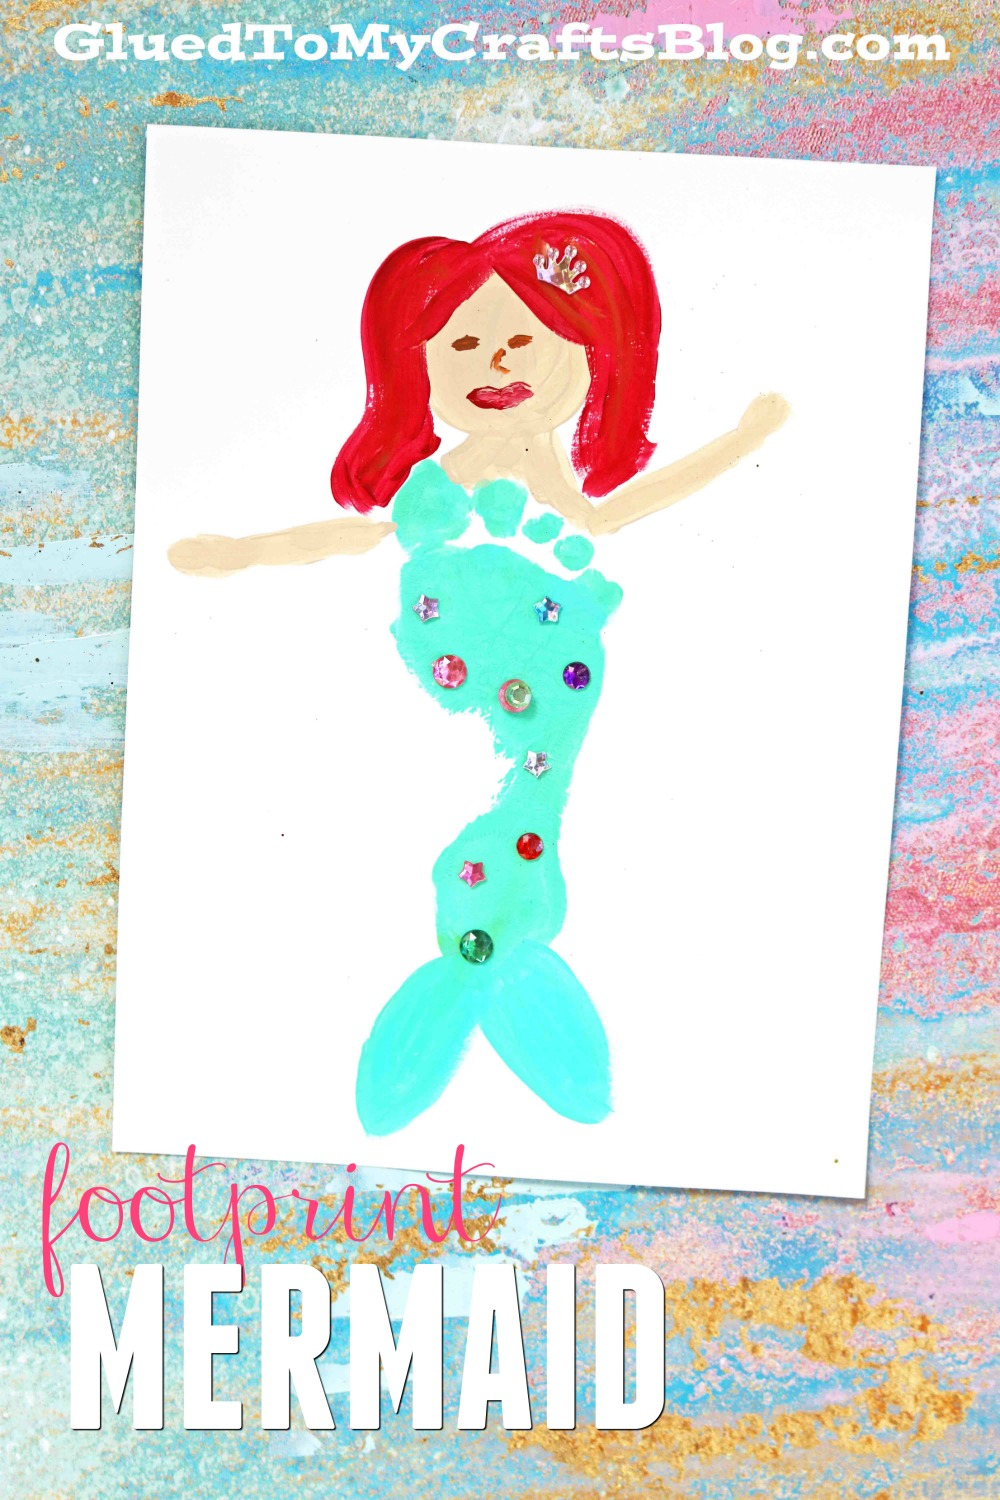 Colorful Footprint Mermaid Keepsake Gift Idea Glued To